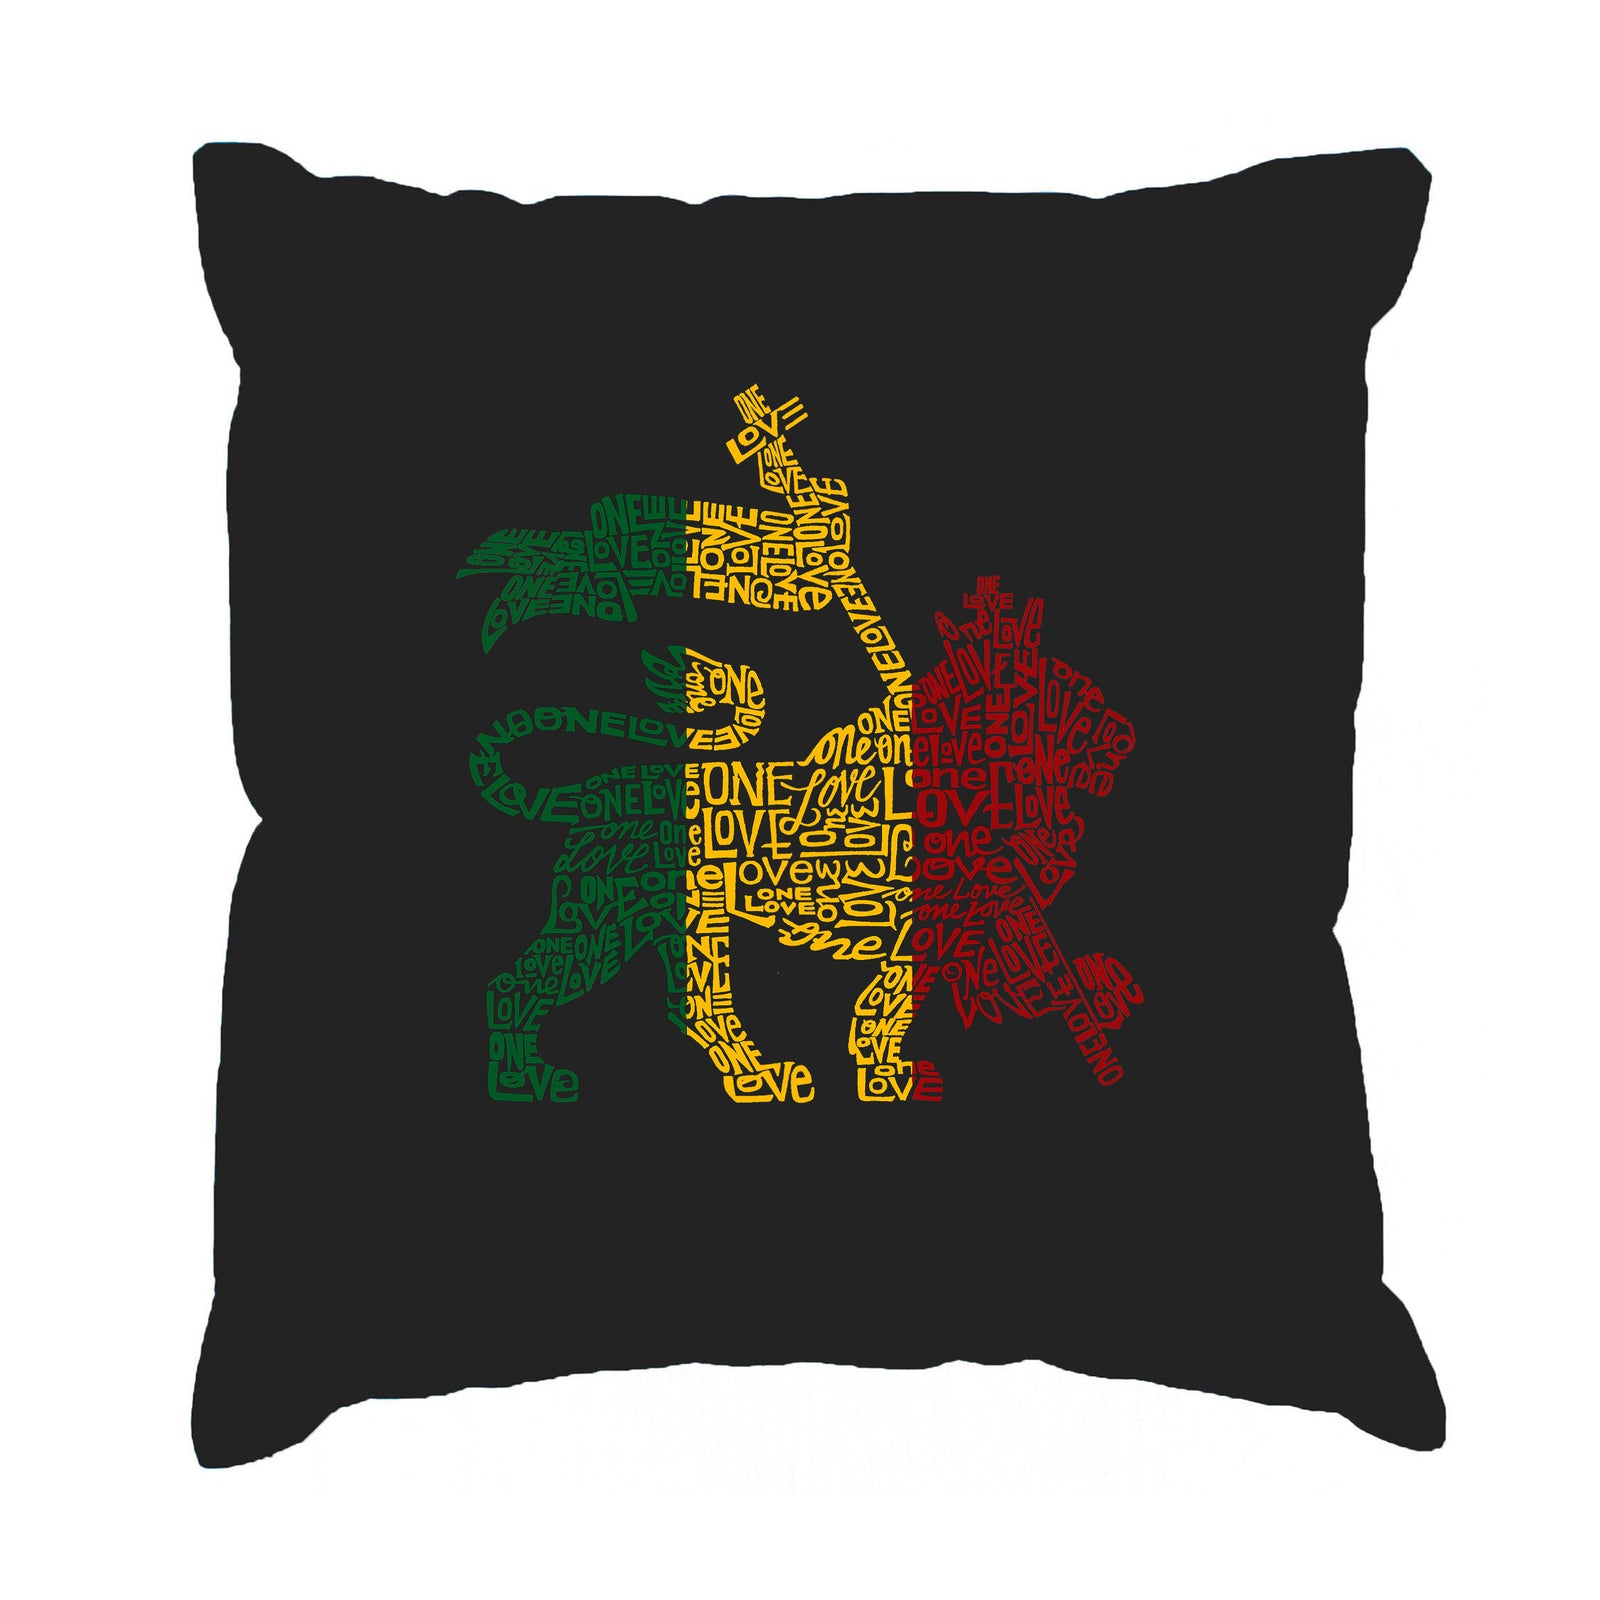 Throw Pillow Cover - Rasta Lion - One Love